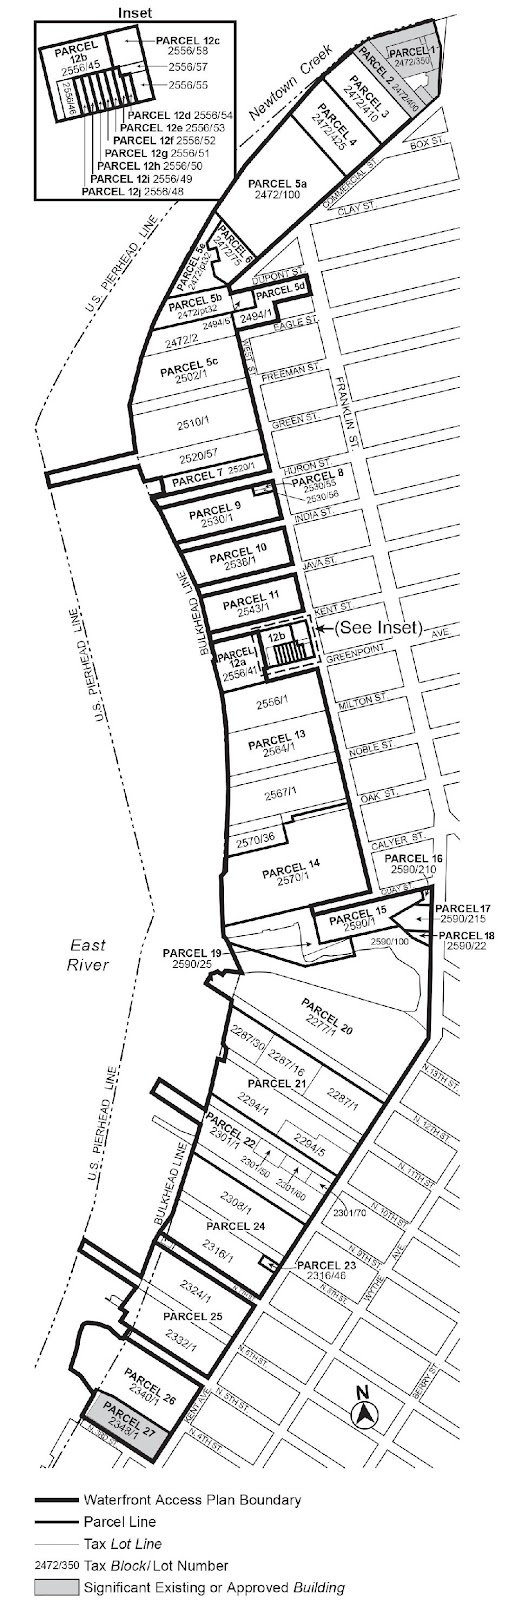 Zoning Resolutions 62-931.2